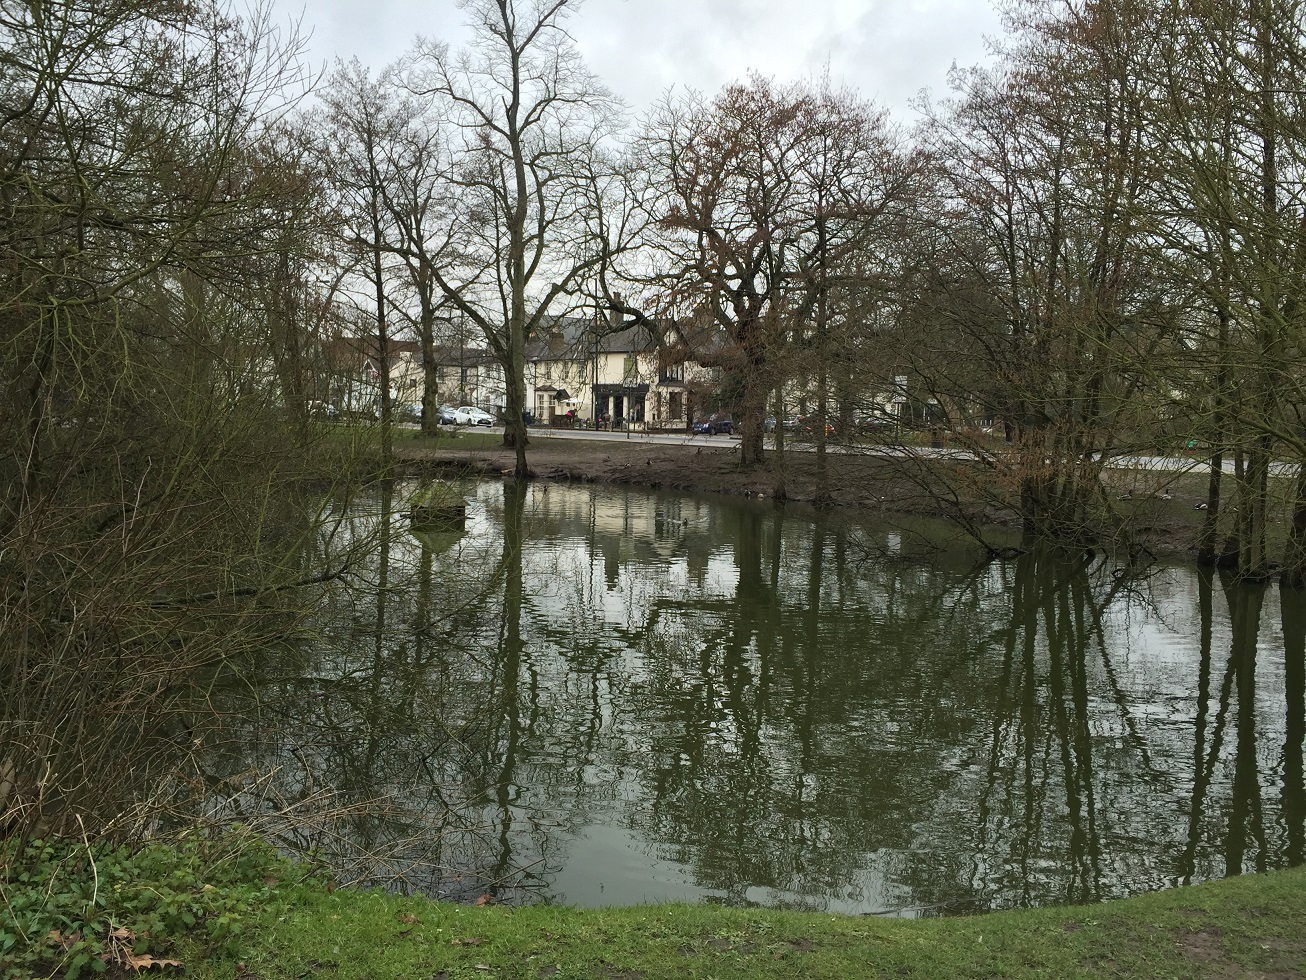 Village pond, Hadley Green, near High Barnet, London